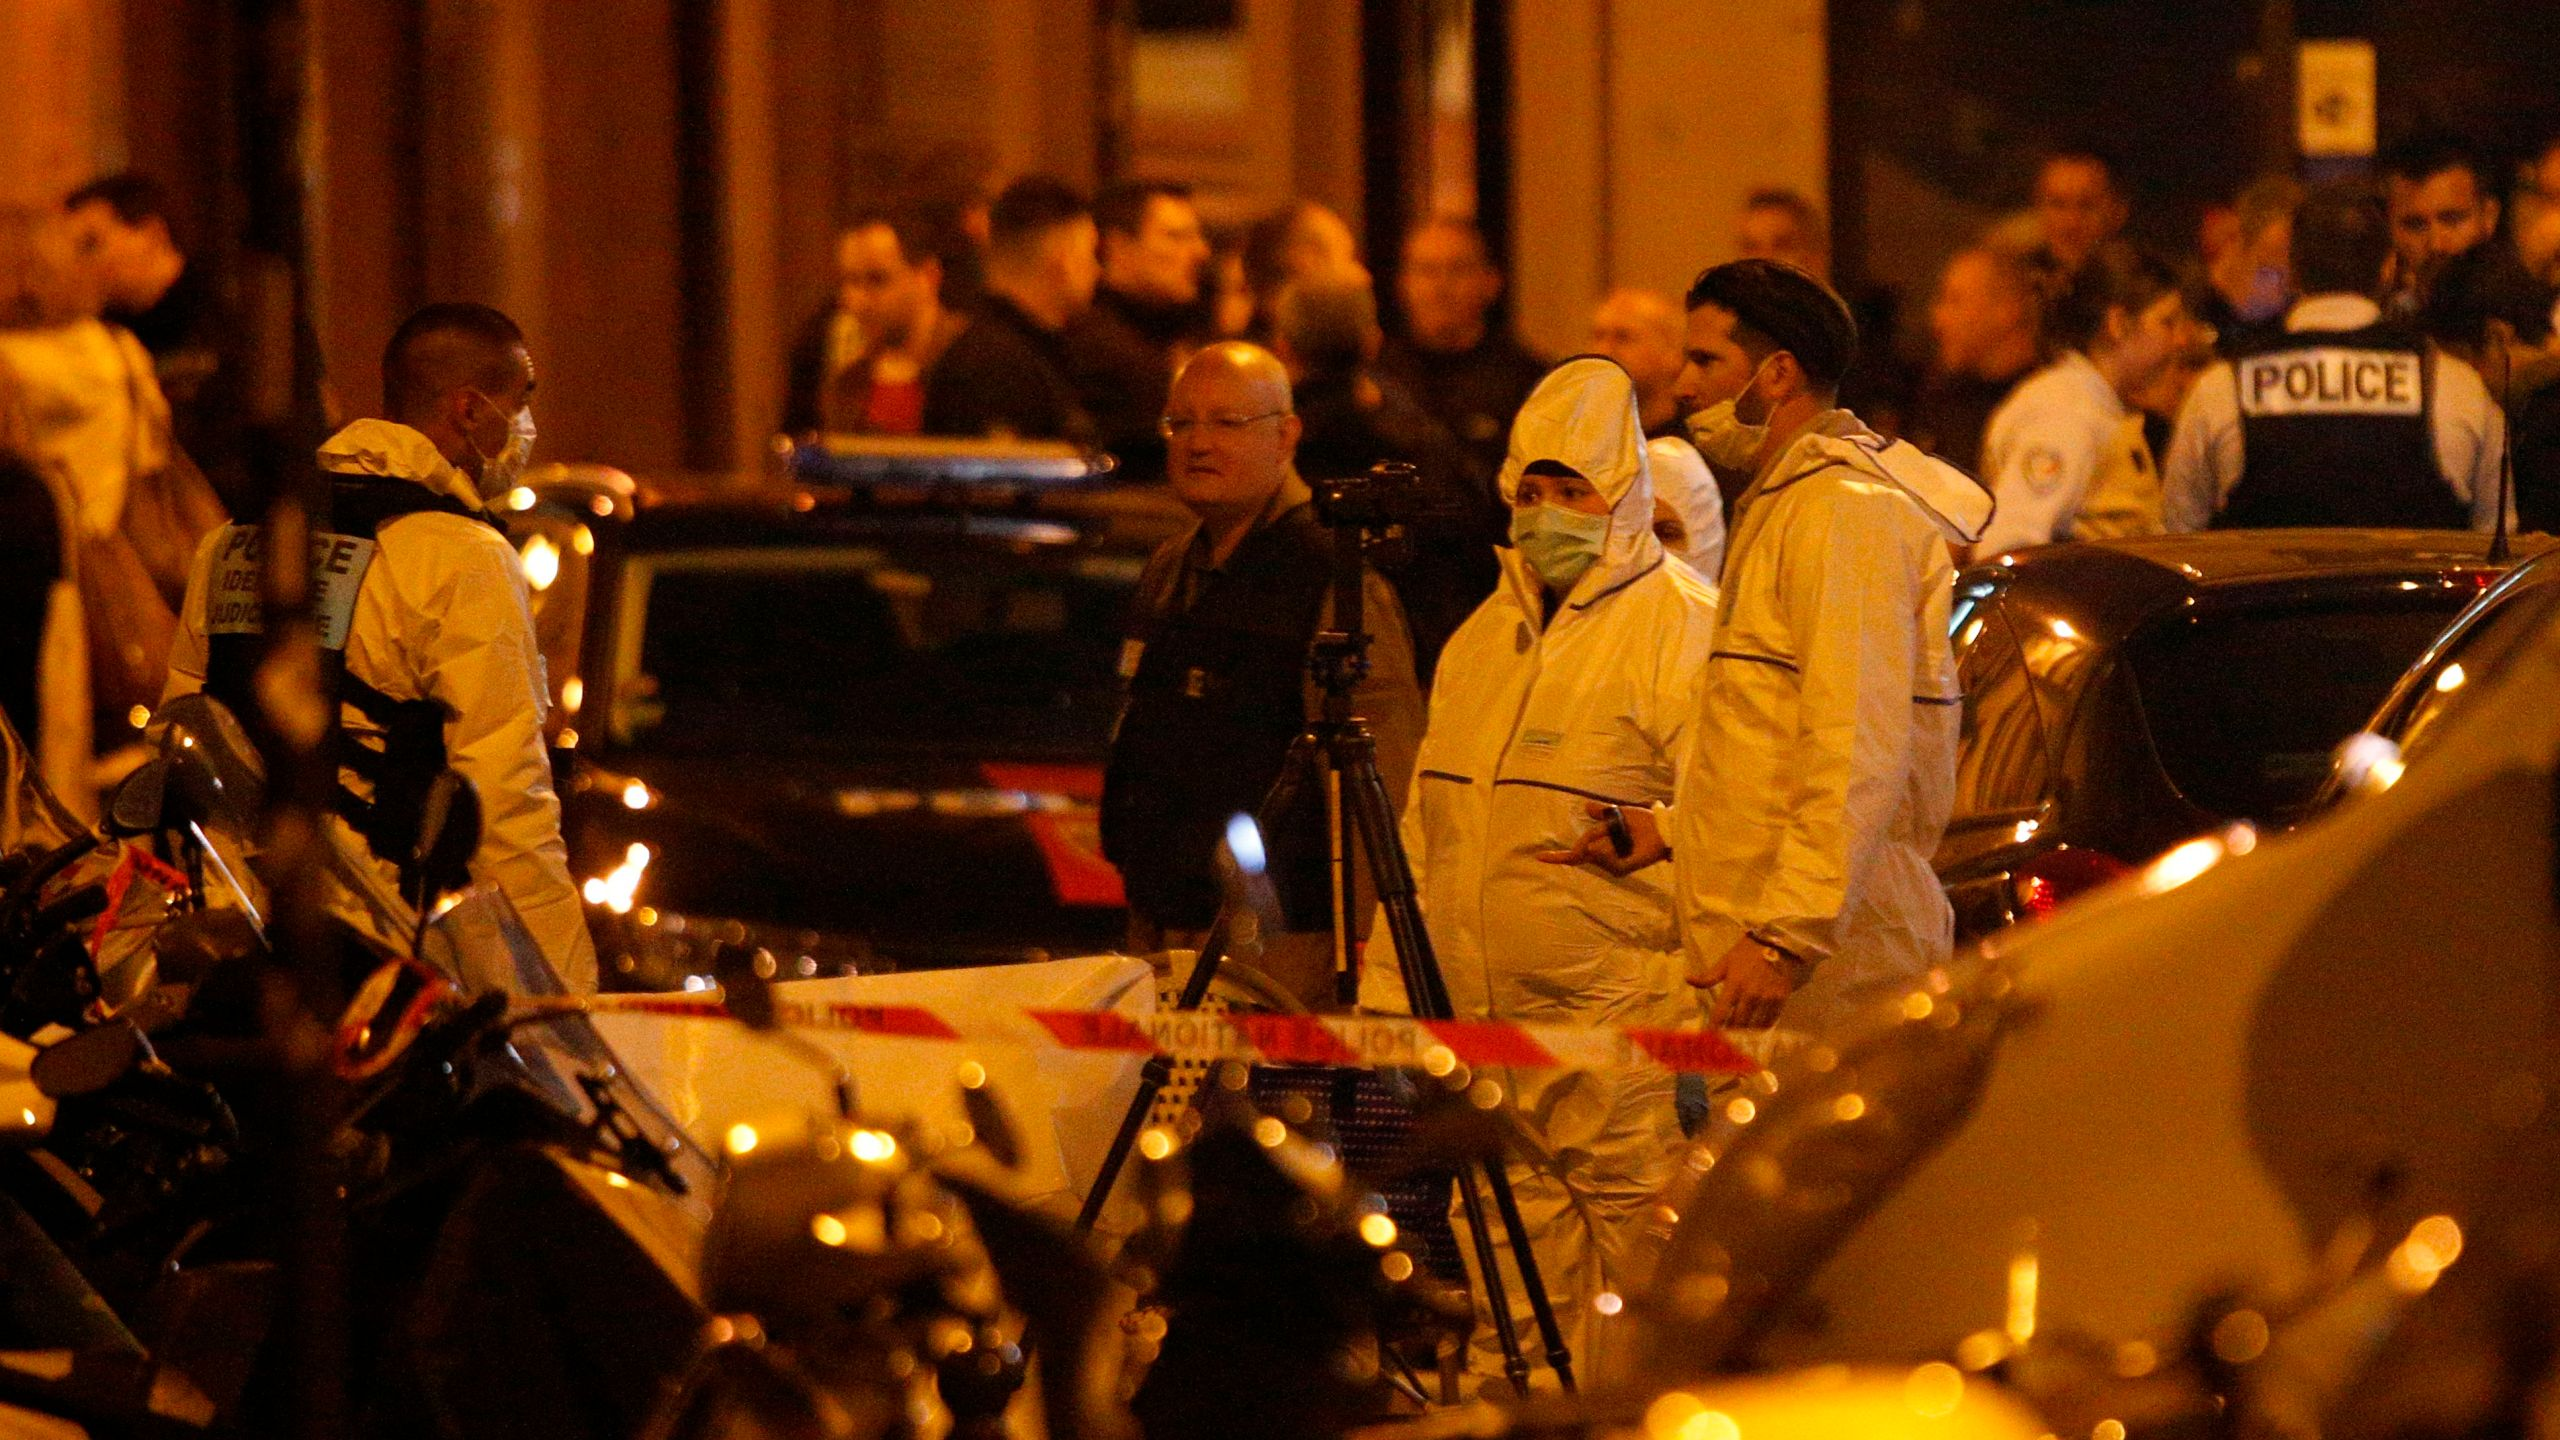 Forensic officers and French policemen stand in Monsigny street in Paris centre on May 12, 2018. (Credit: GEOFFROY VAN DER HASSELT/AFP/Getty Images)